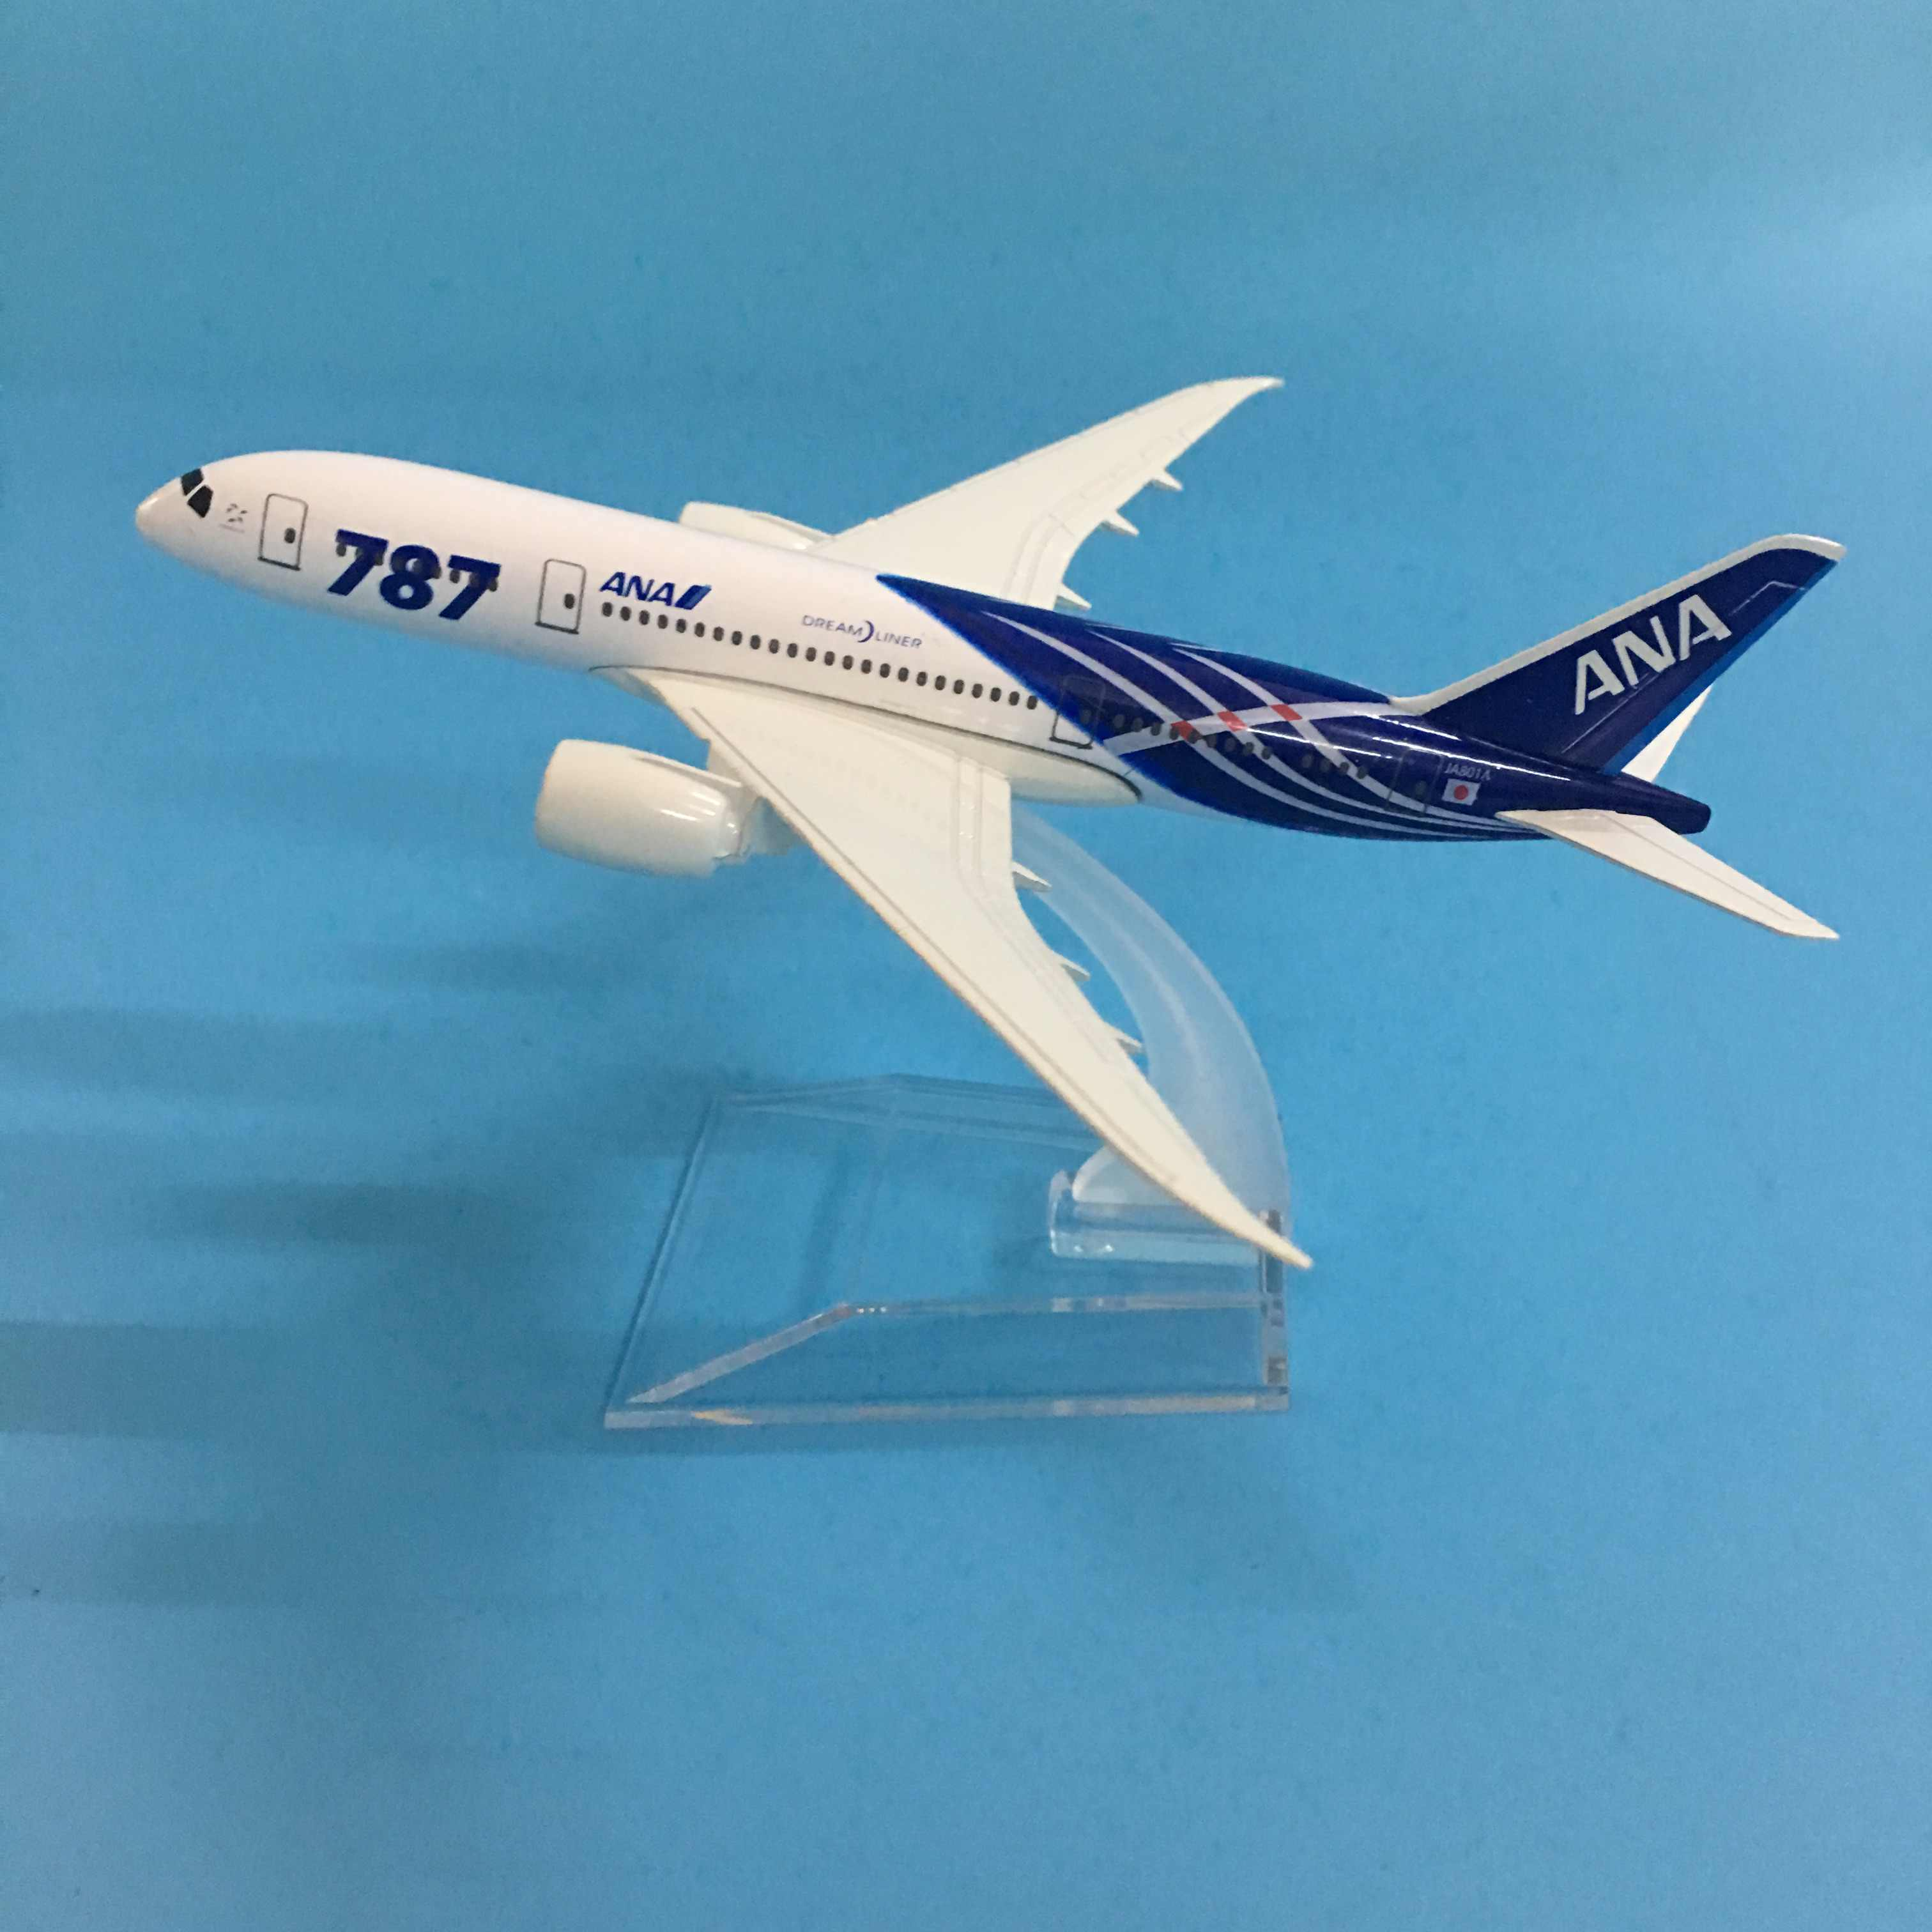 JASON TUTU 16cm Plane Model Airplane Model JAPAN AIR ANA  Boeing 787 Aircraft Model 1:400 Diecast Metal Airplanes Plane Toy Gift